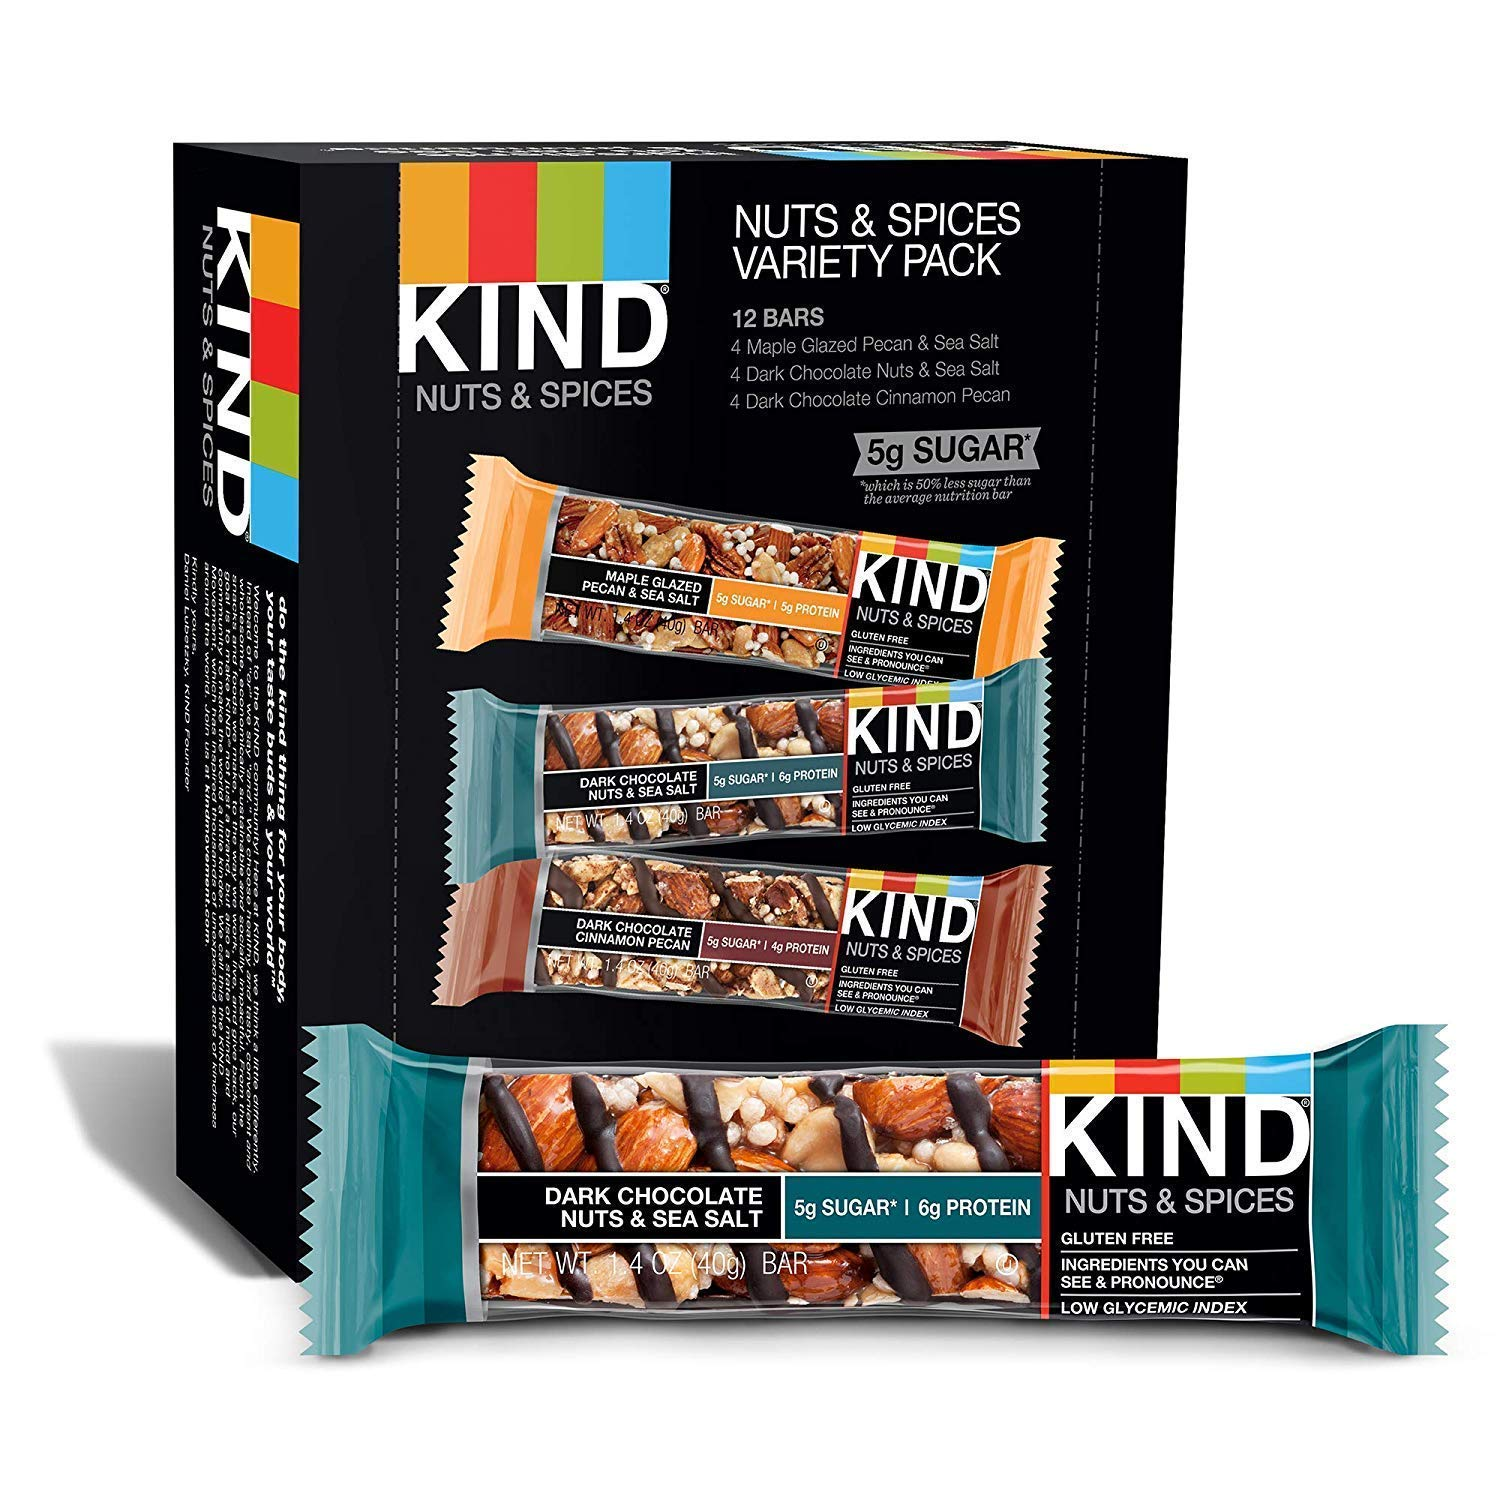 KIND Bars, Nuts and Spices Variety Pack, Gluten Free, 1.4 Ounce Bars,Packaging May Vary